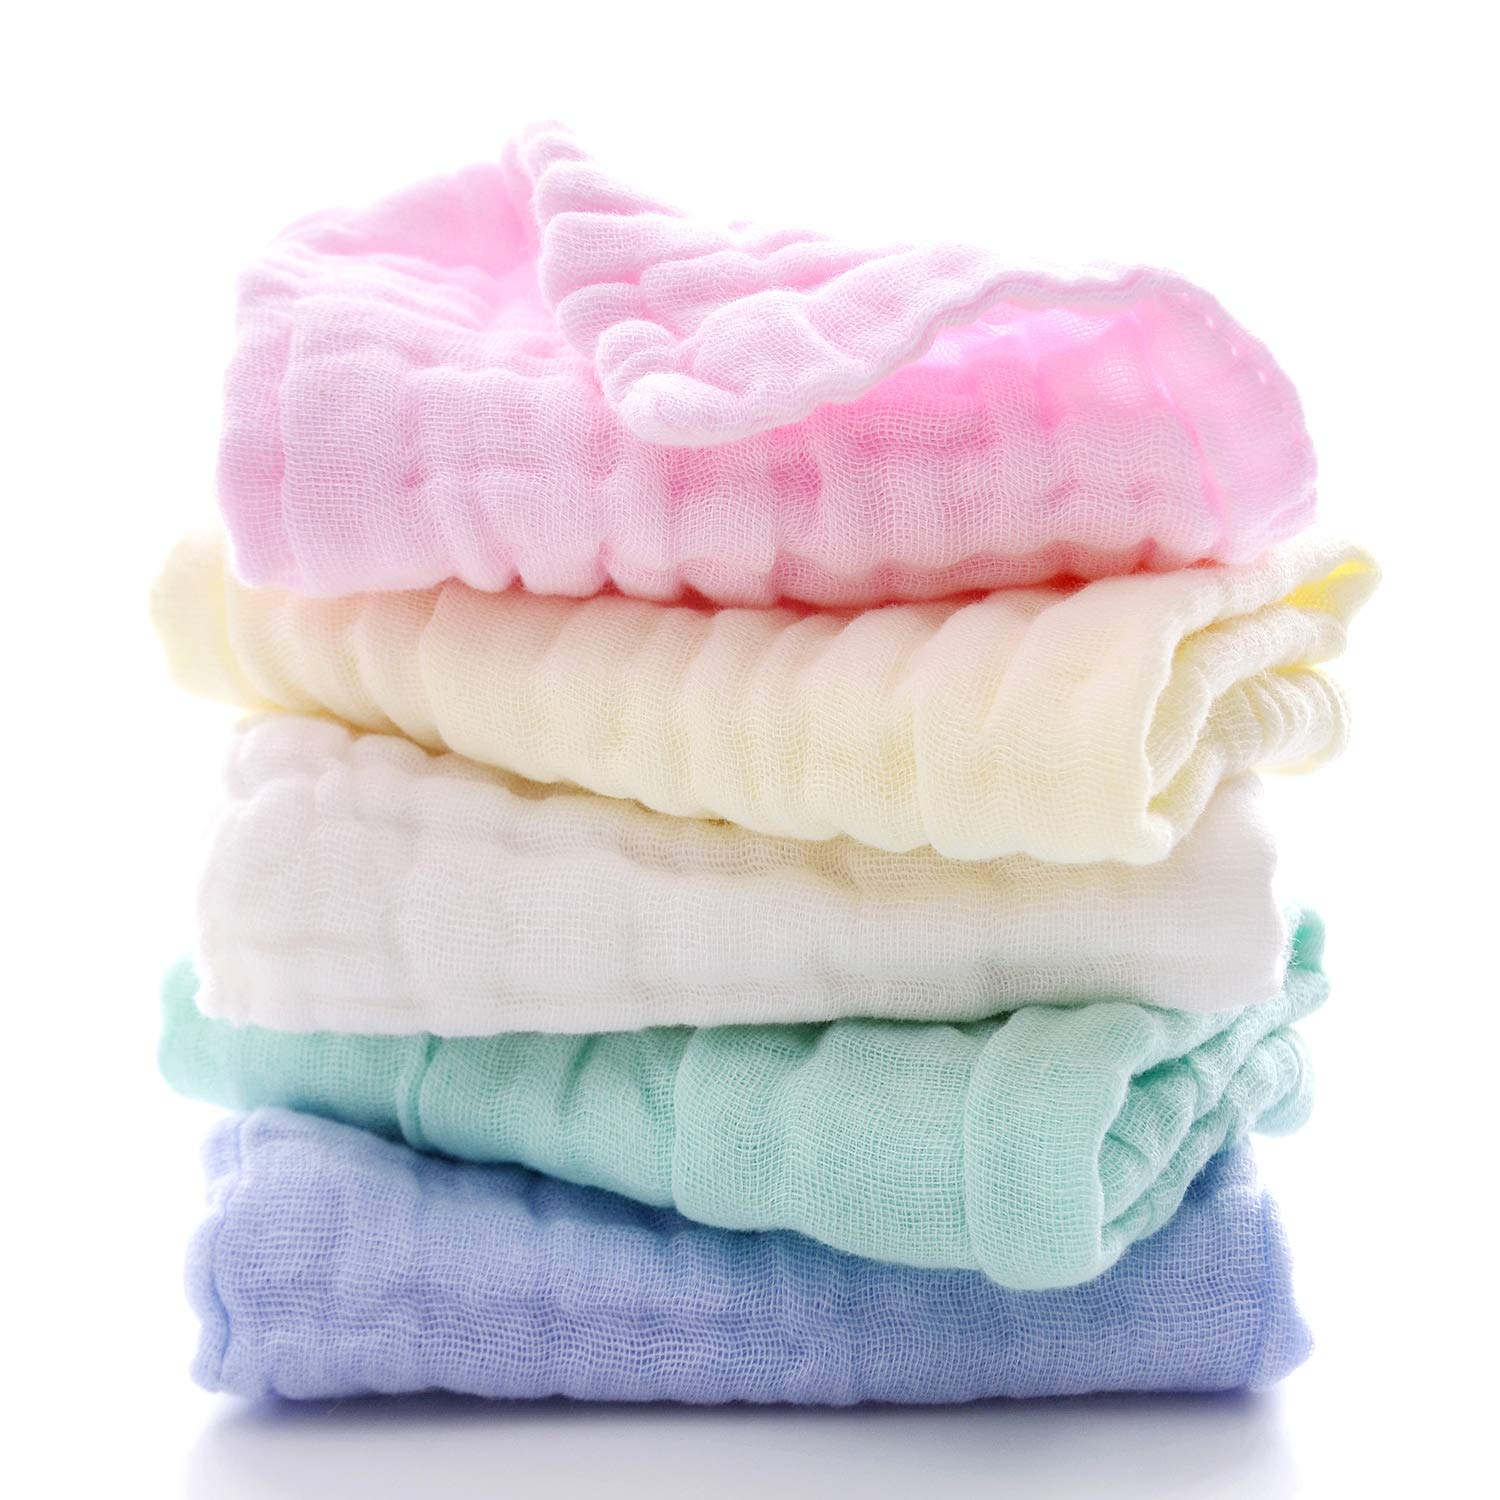 Mukin Cotton Muslin Baby Towels